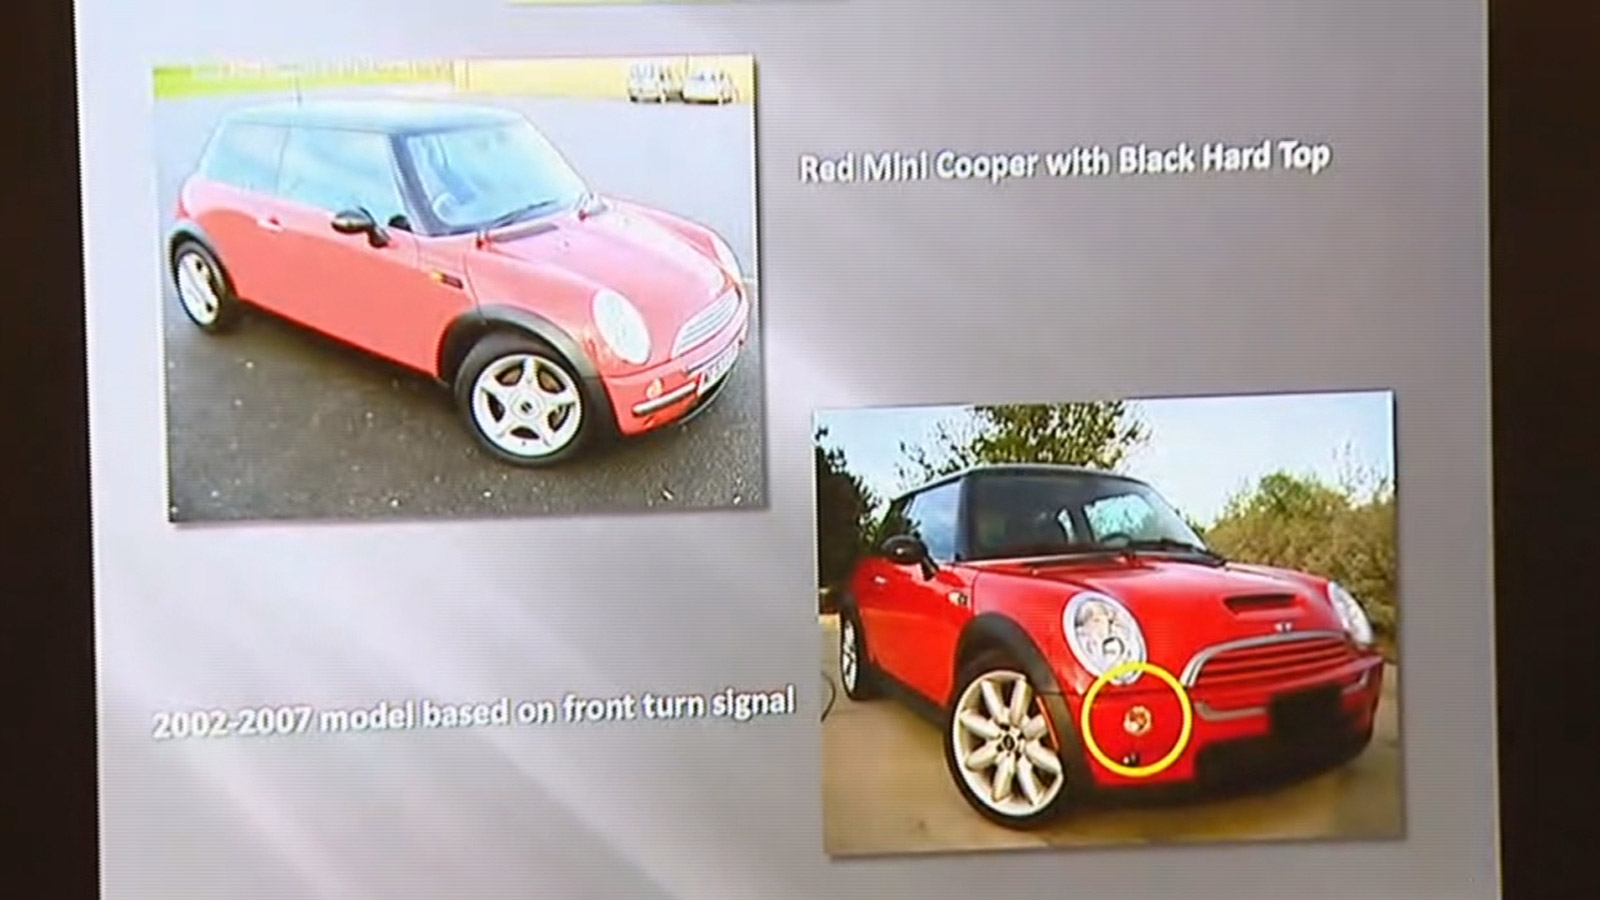 The red Mini Cooper wanted in the shootings at Banner Health Facility and Cottonwood Plains Elementary School (credit: CBS)